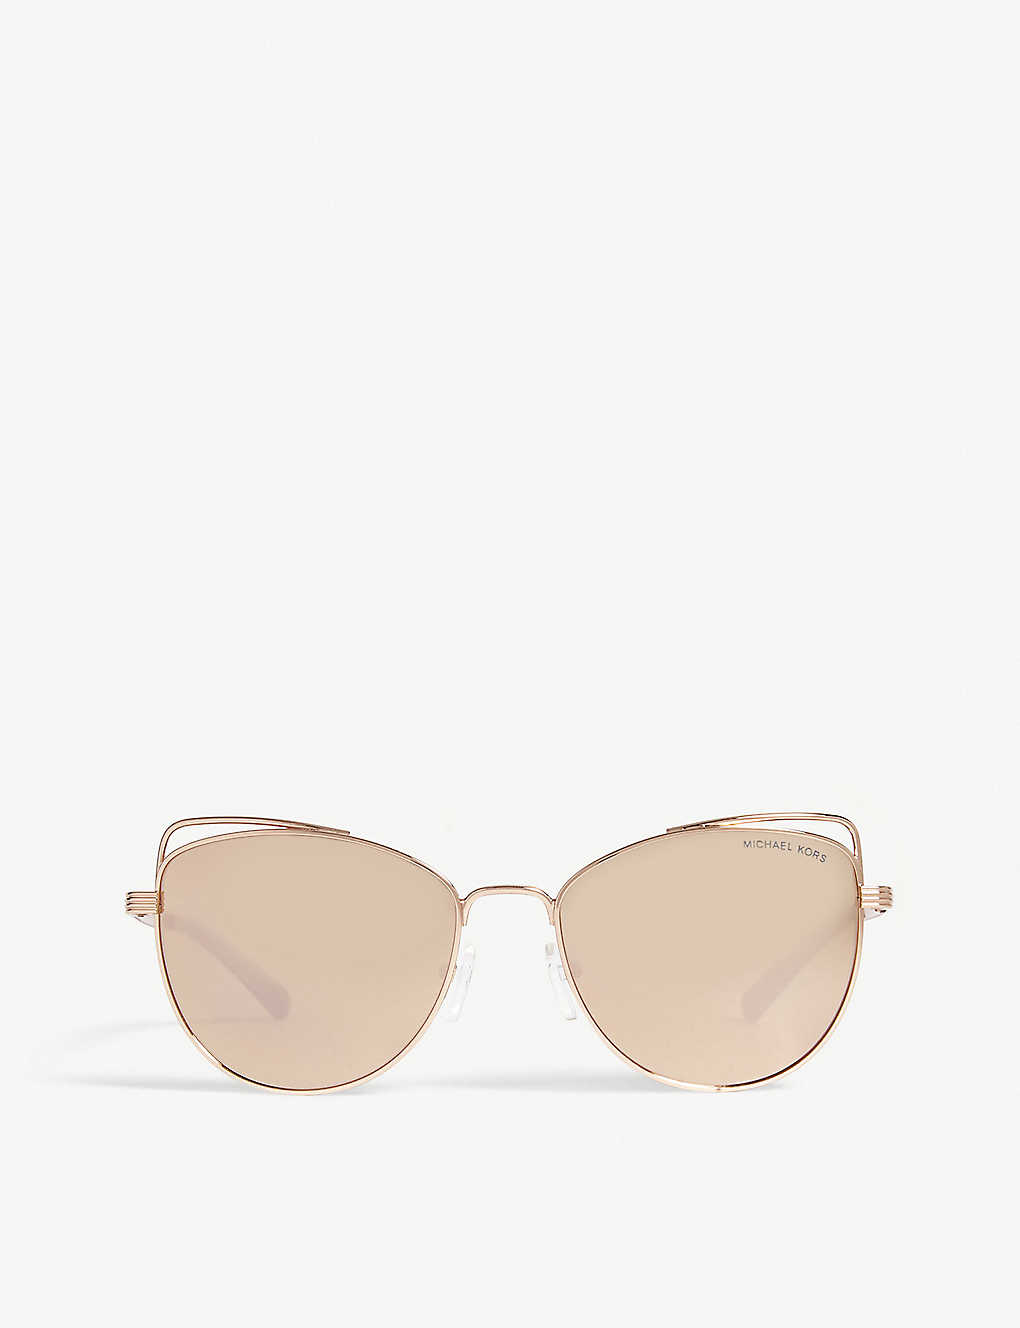 c9b99ce243f7 MICHAEL KORS - Michael Kors Rose Gold St. Lucia Cat's Eye Sunglasses ...